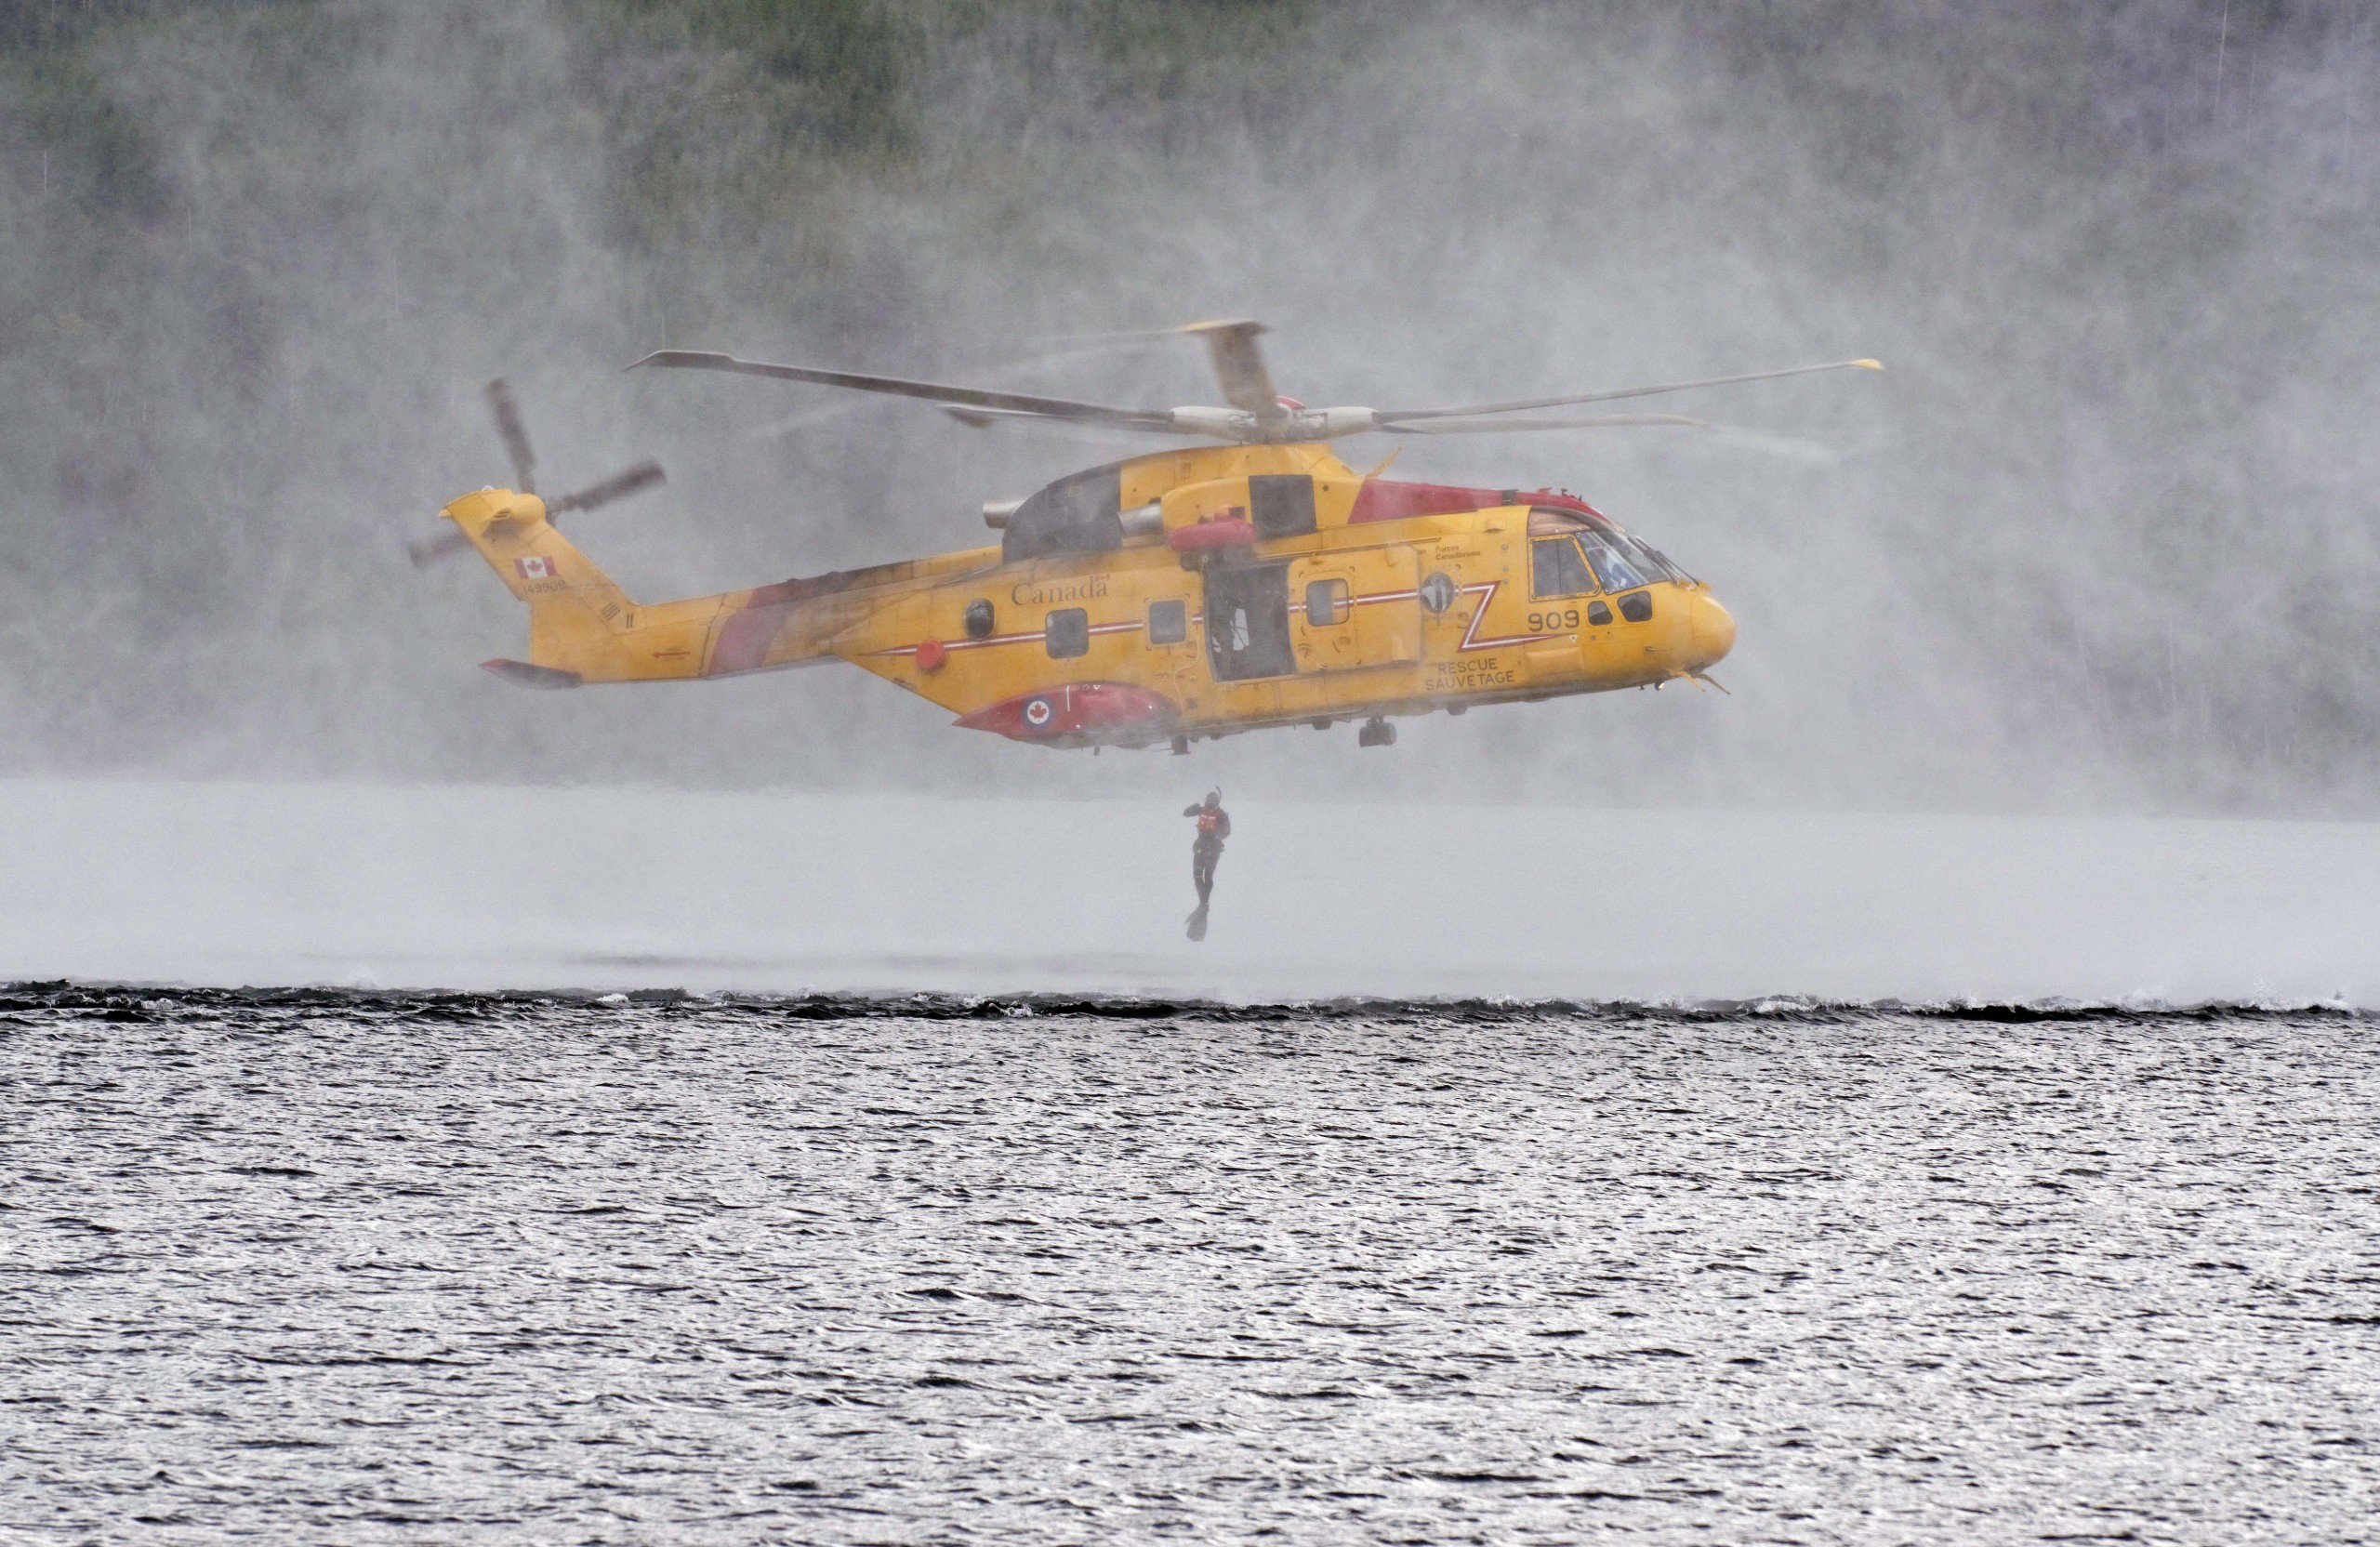 442 Squadron Helps Save Another Life